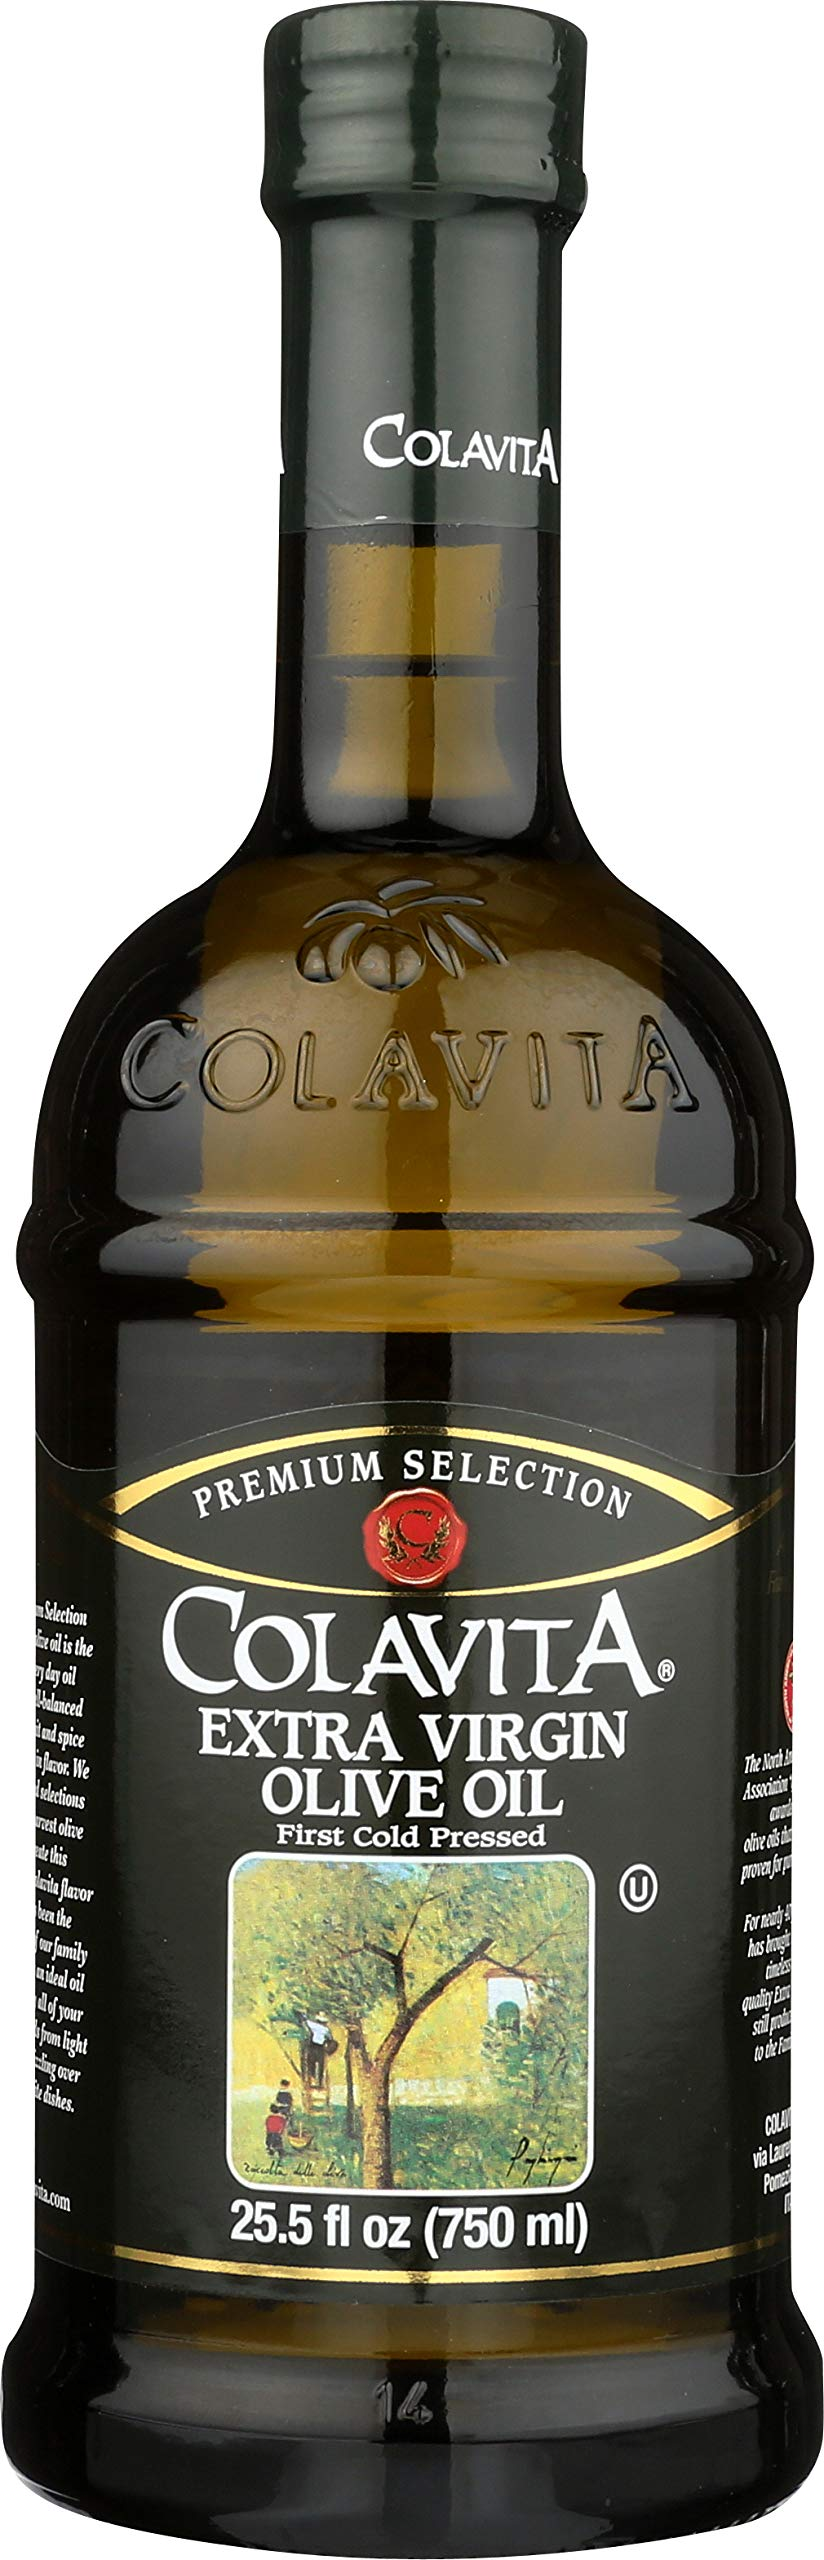 Colavita Extra Virgin Olive Oil, First Cold Pressed, 25.5 fl. oz., Glass Bottle by Colavita (Image #1)